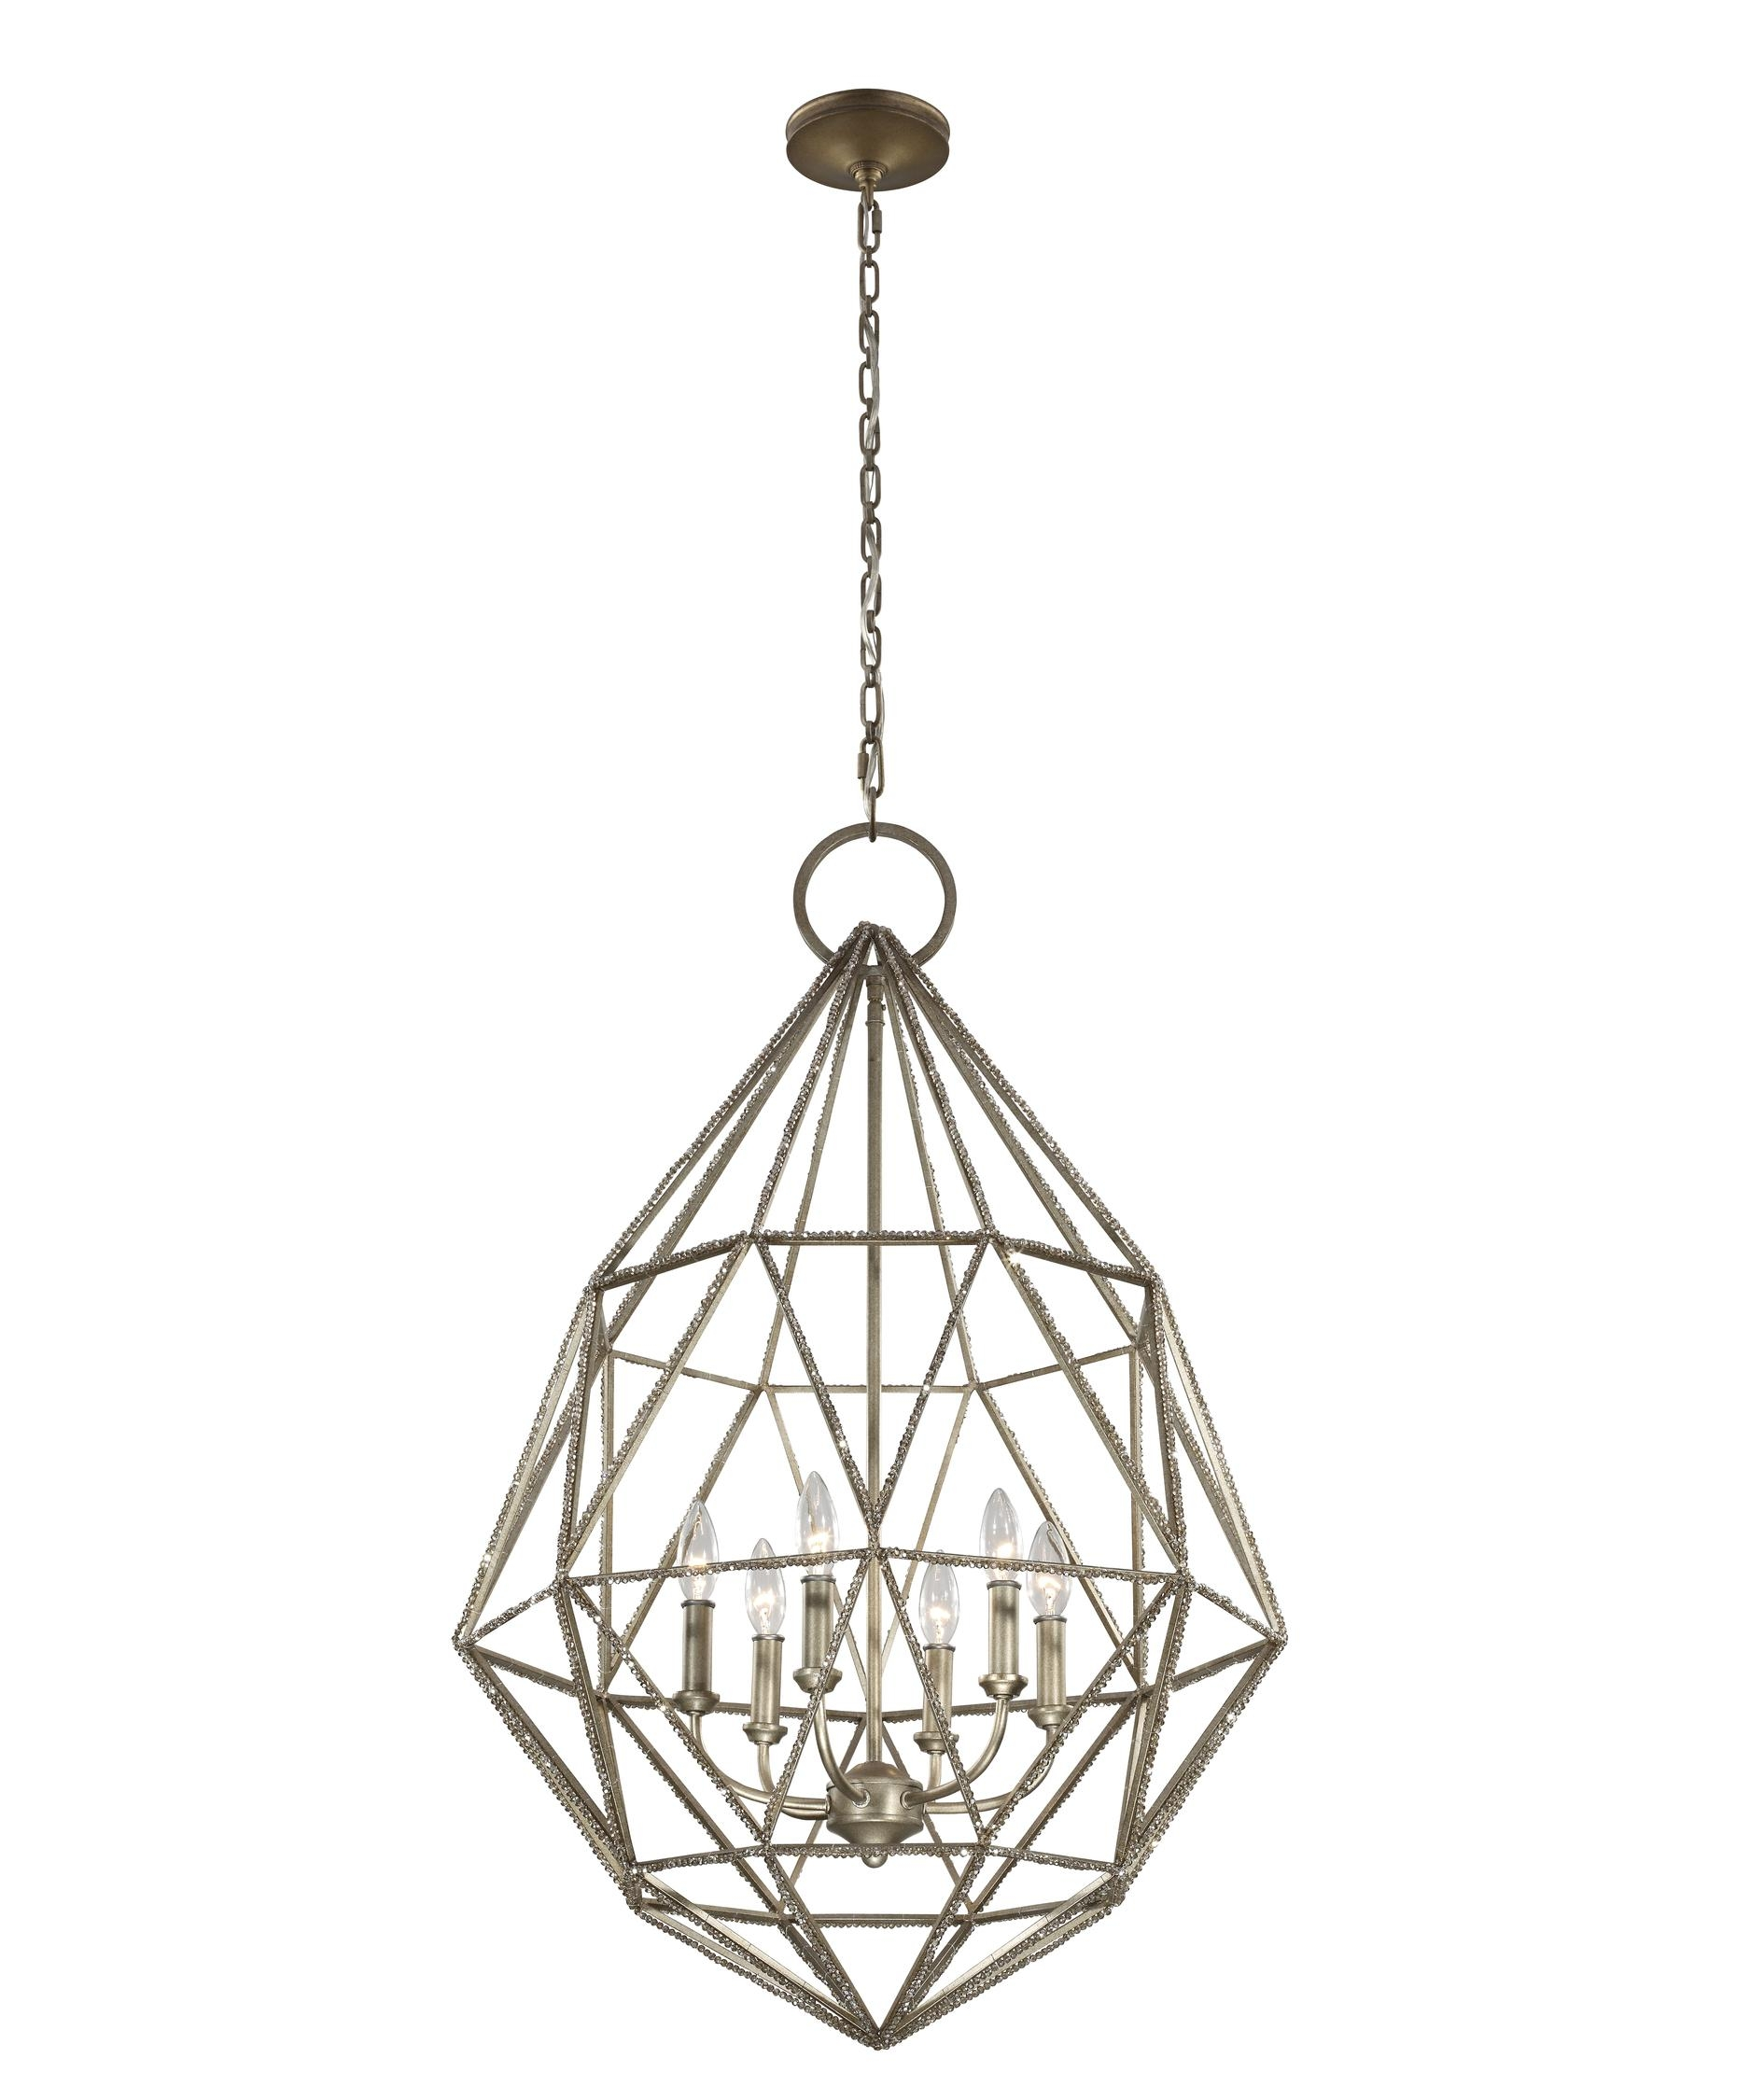 Murray Feiss F2942 6 Marquise 25 Inch Wide 6 Light Chandelier Within Feiss Chandeliers (Image 24 of 25)